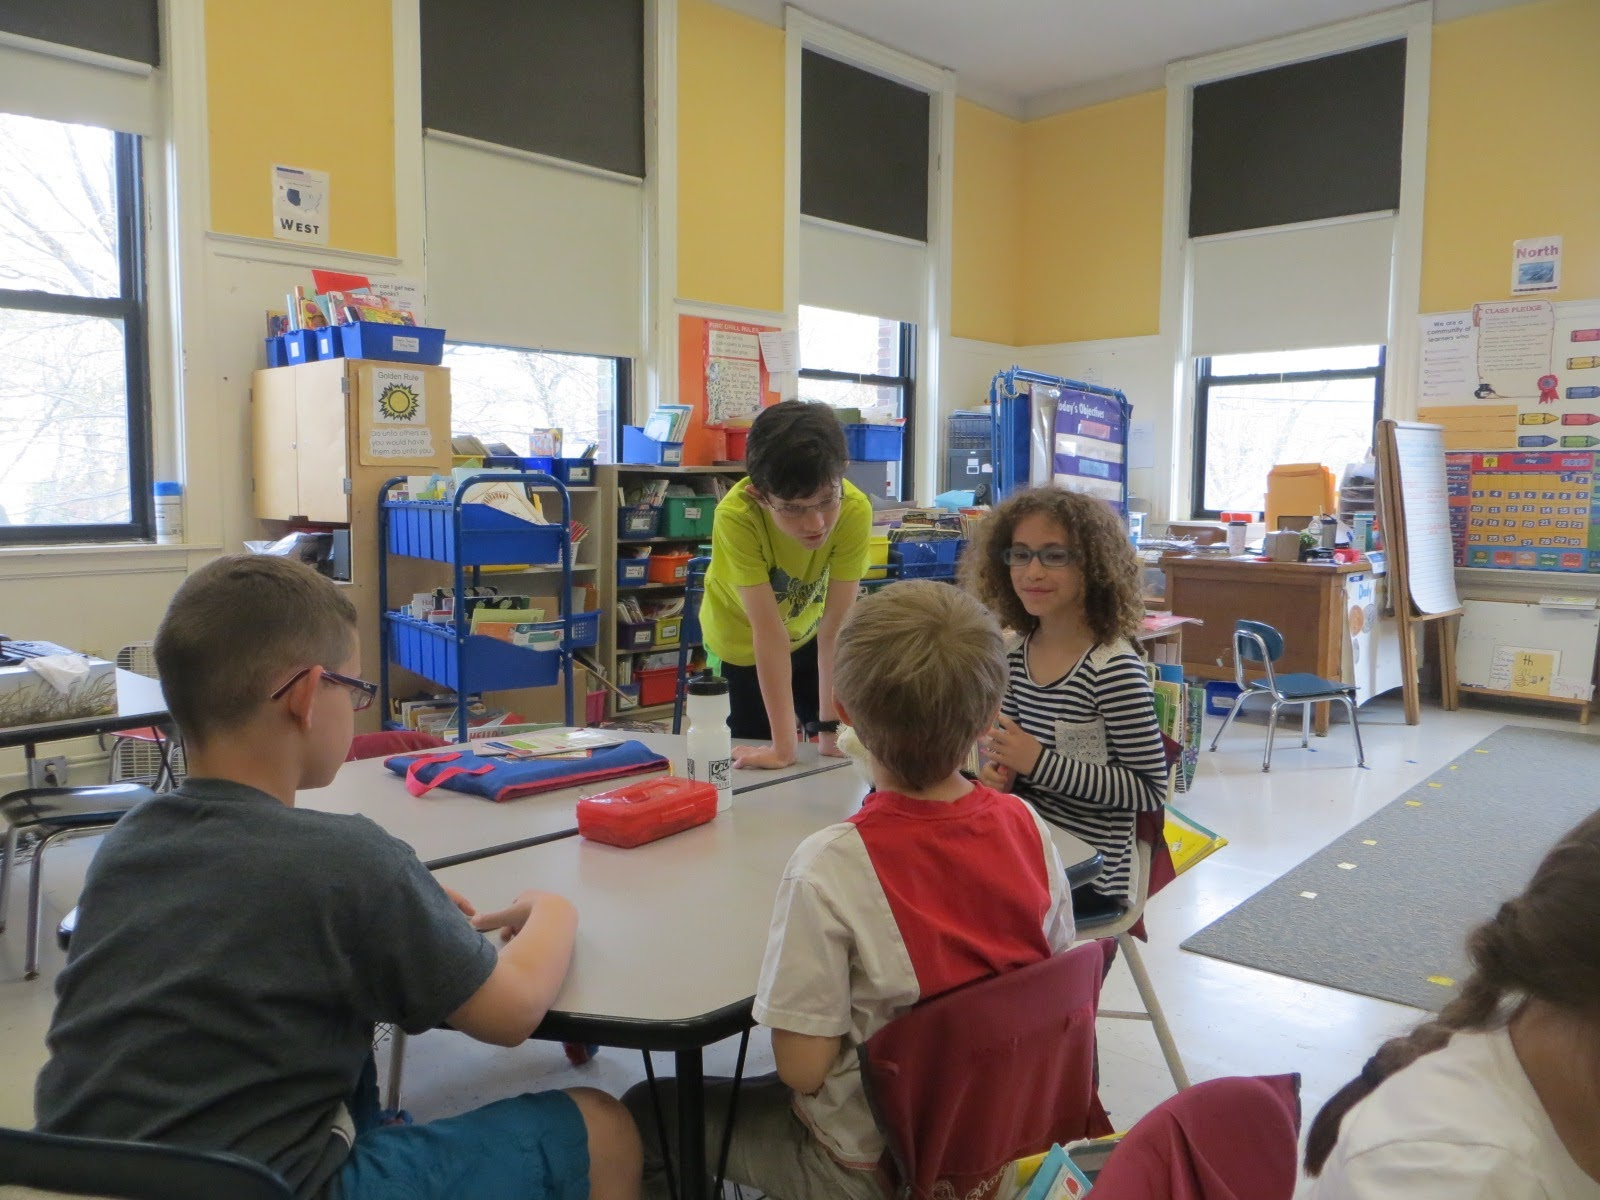 Brown School students working together